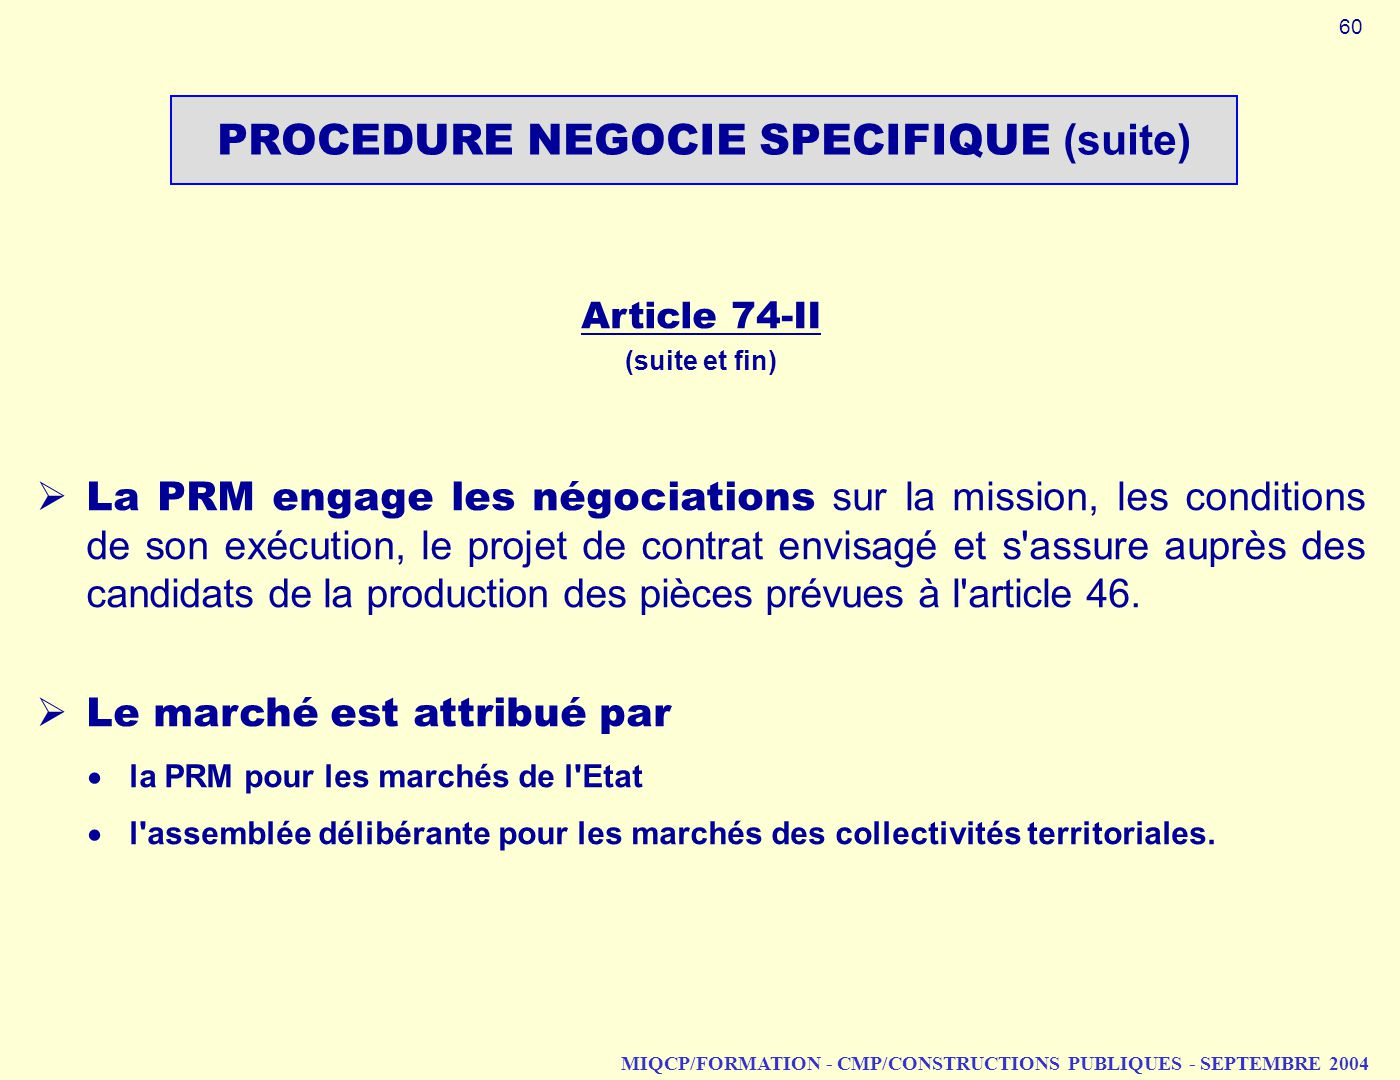 PROCEDURE NEGOCIE SPECIFIQUE (suite)